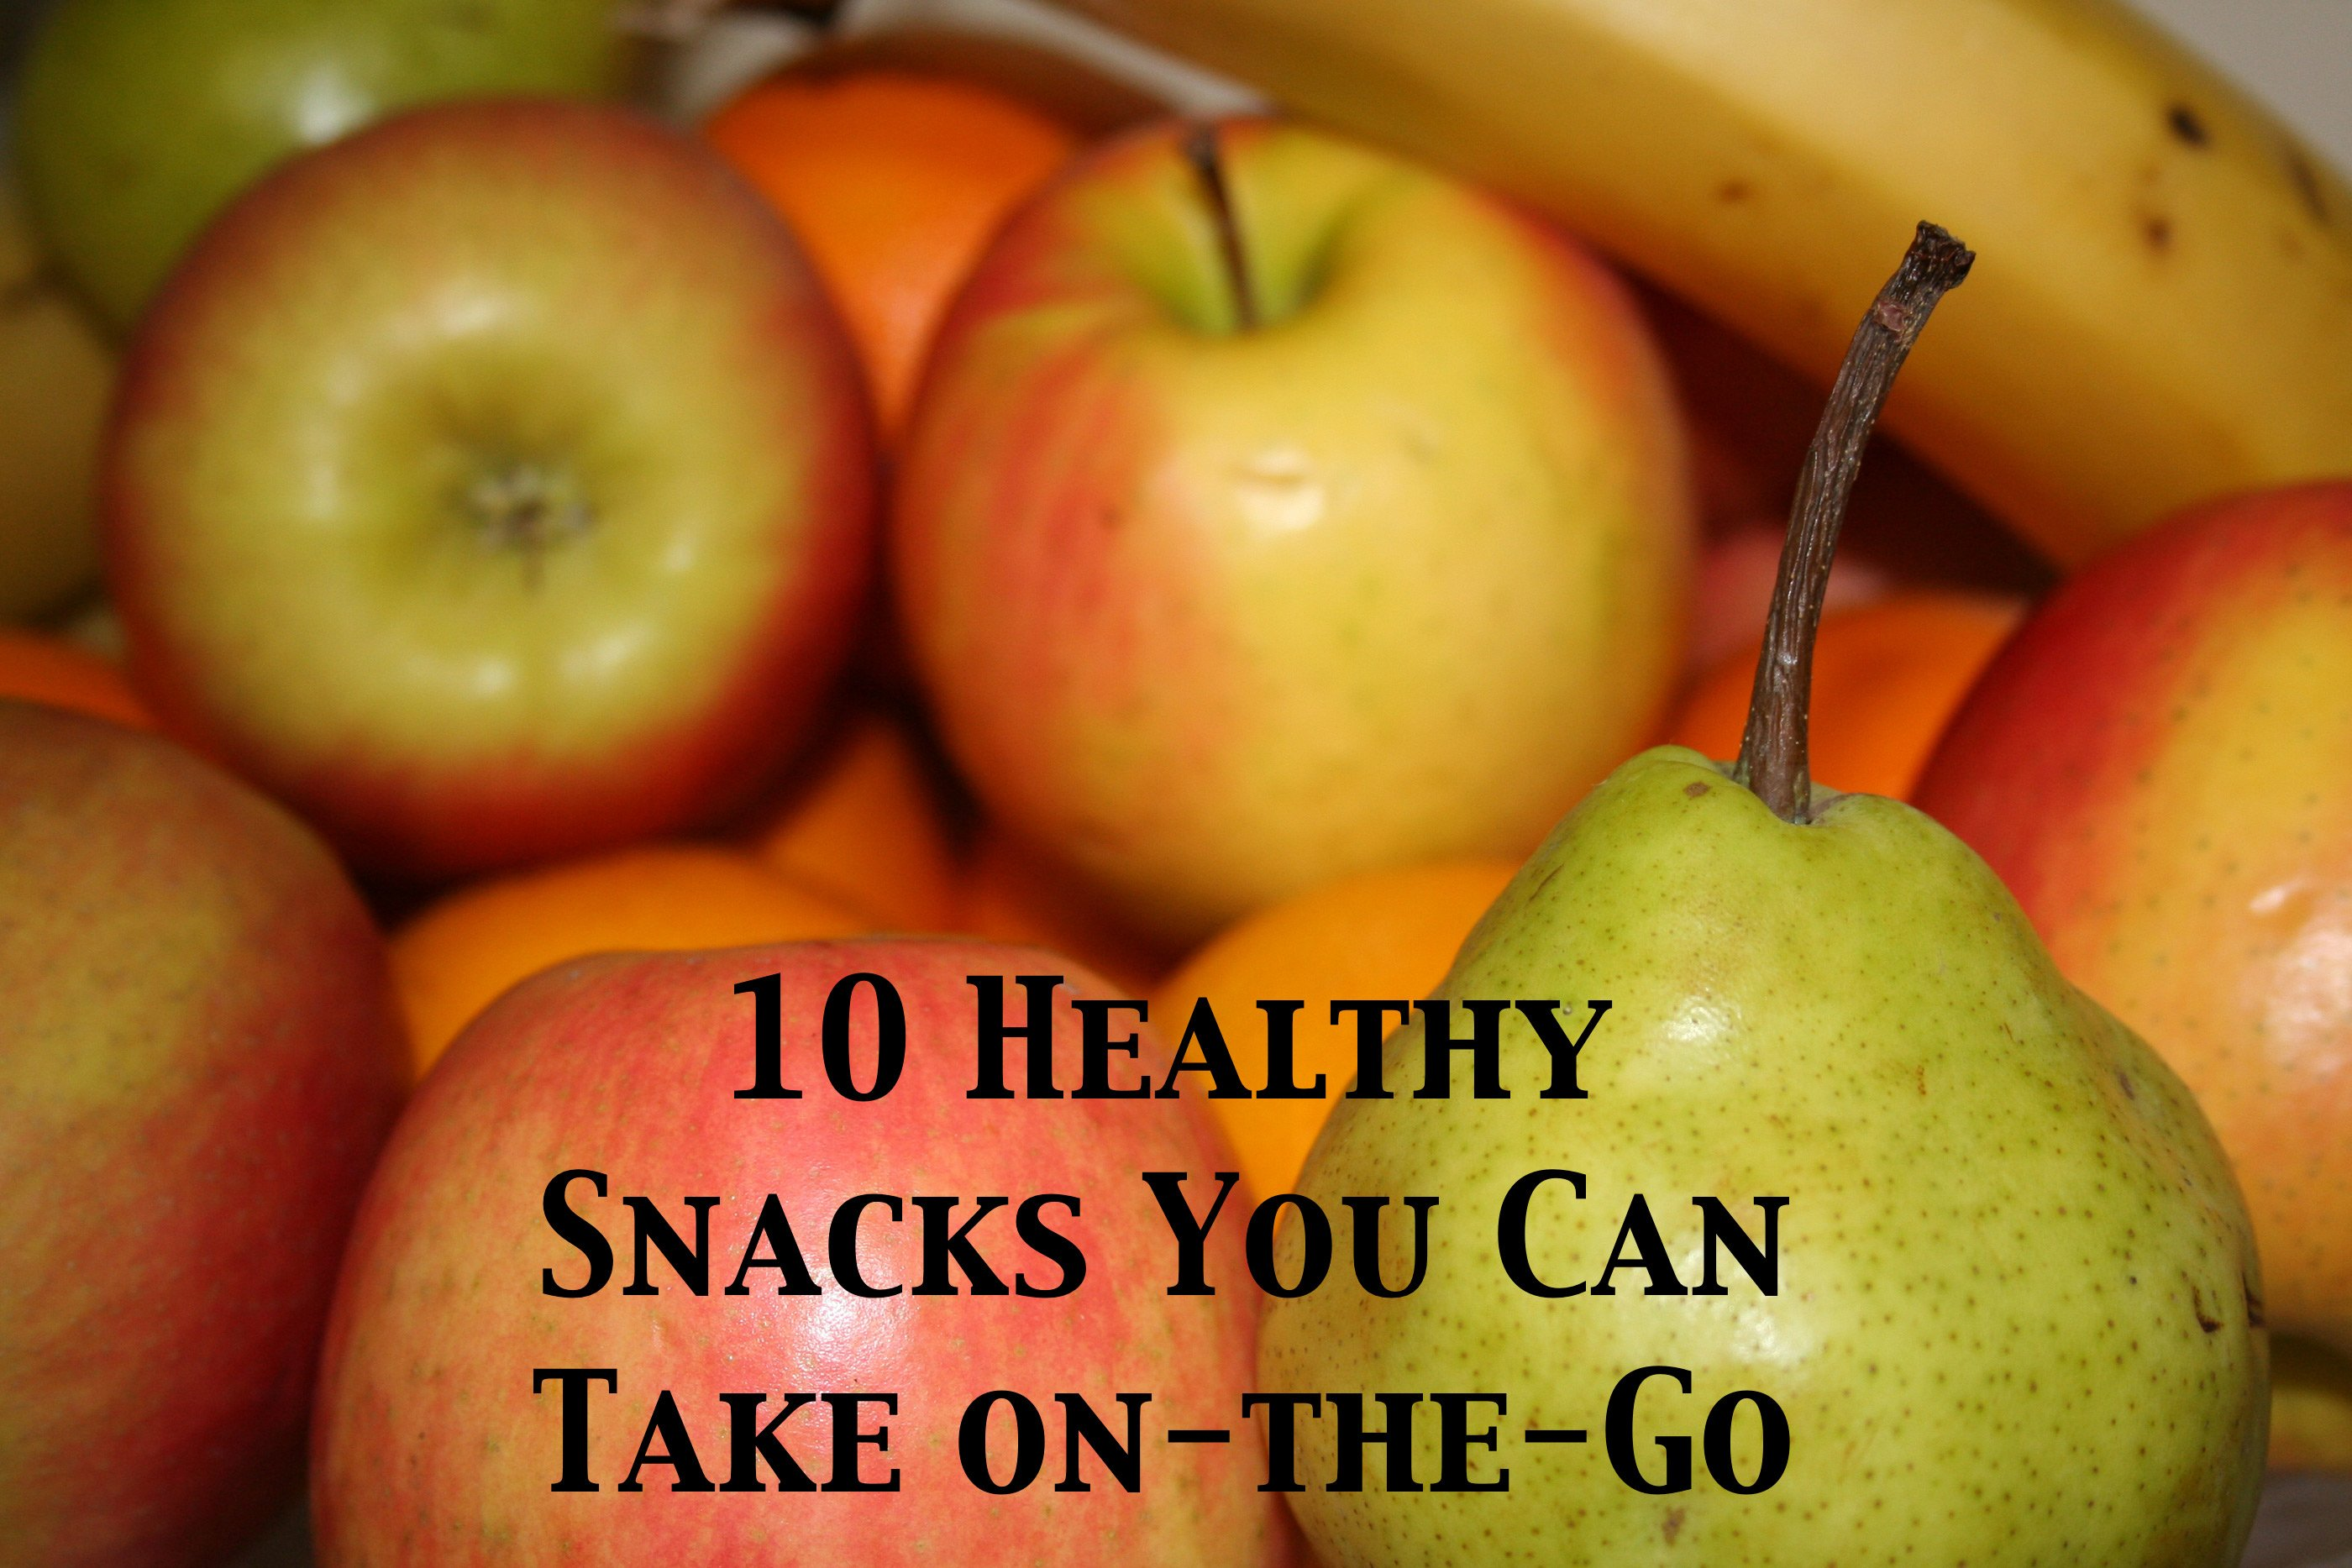 10 Healthy Snacks You Can Take on the Go